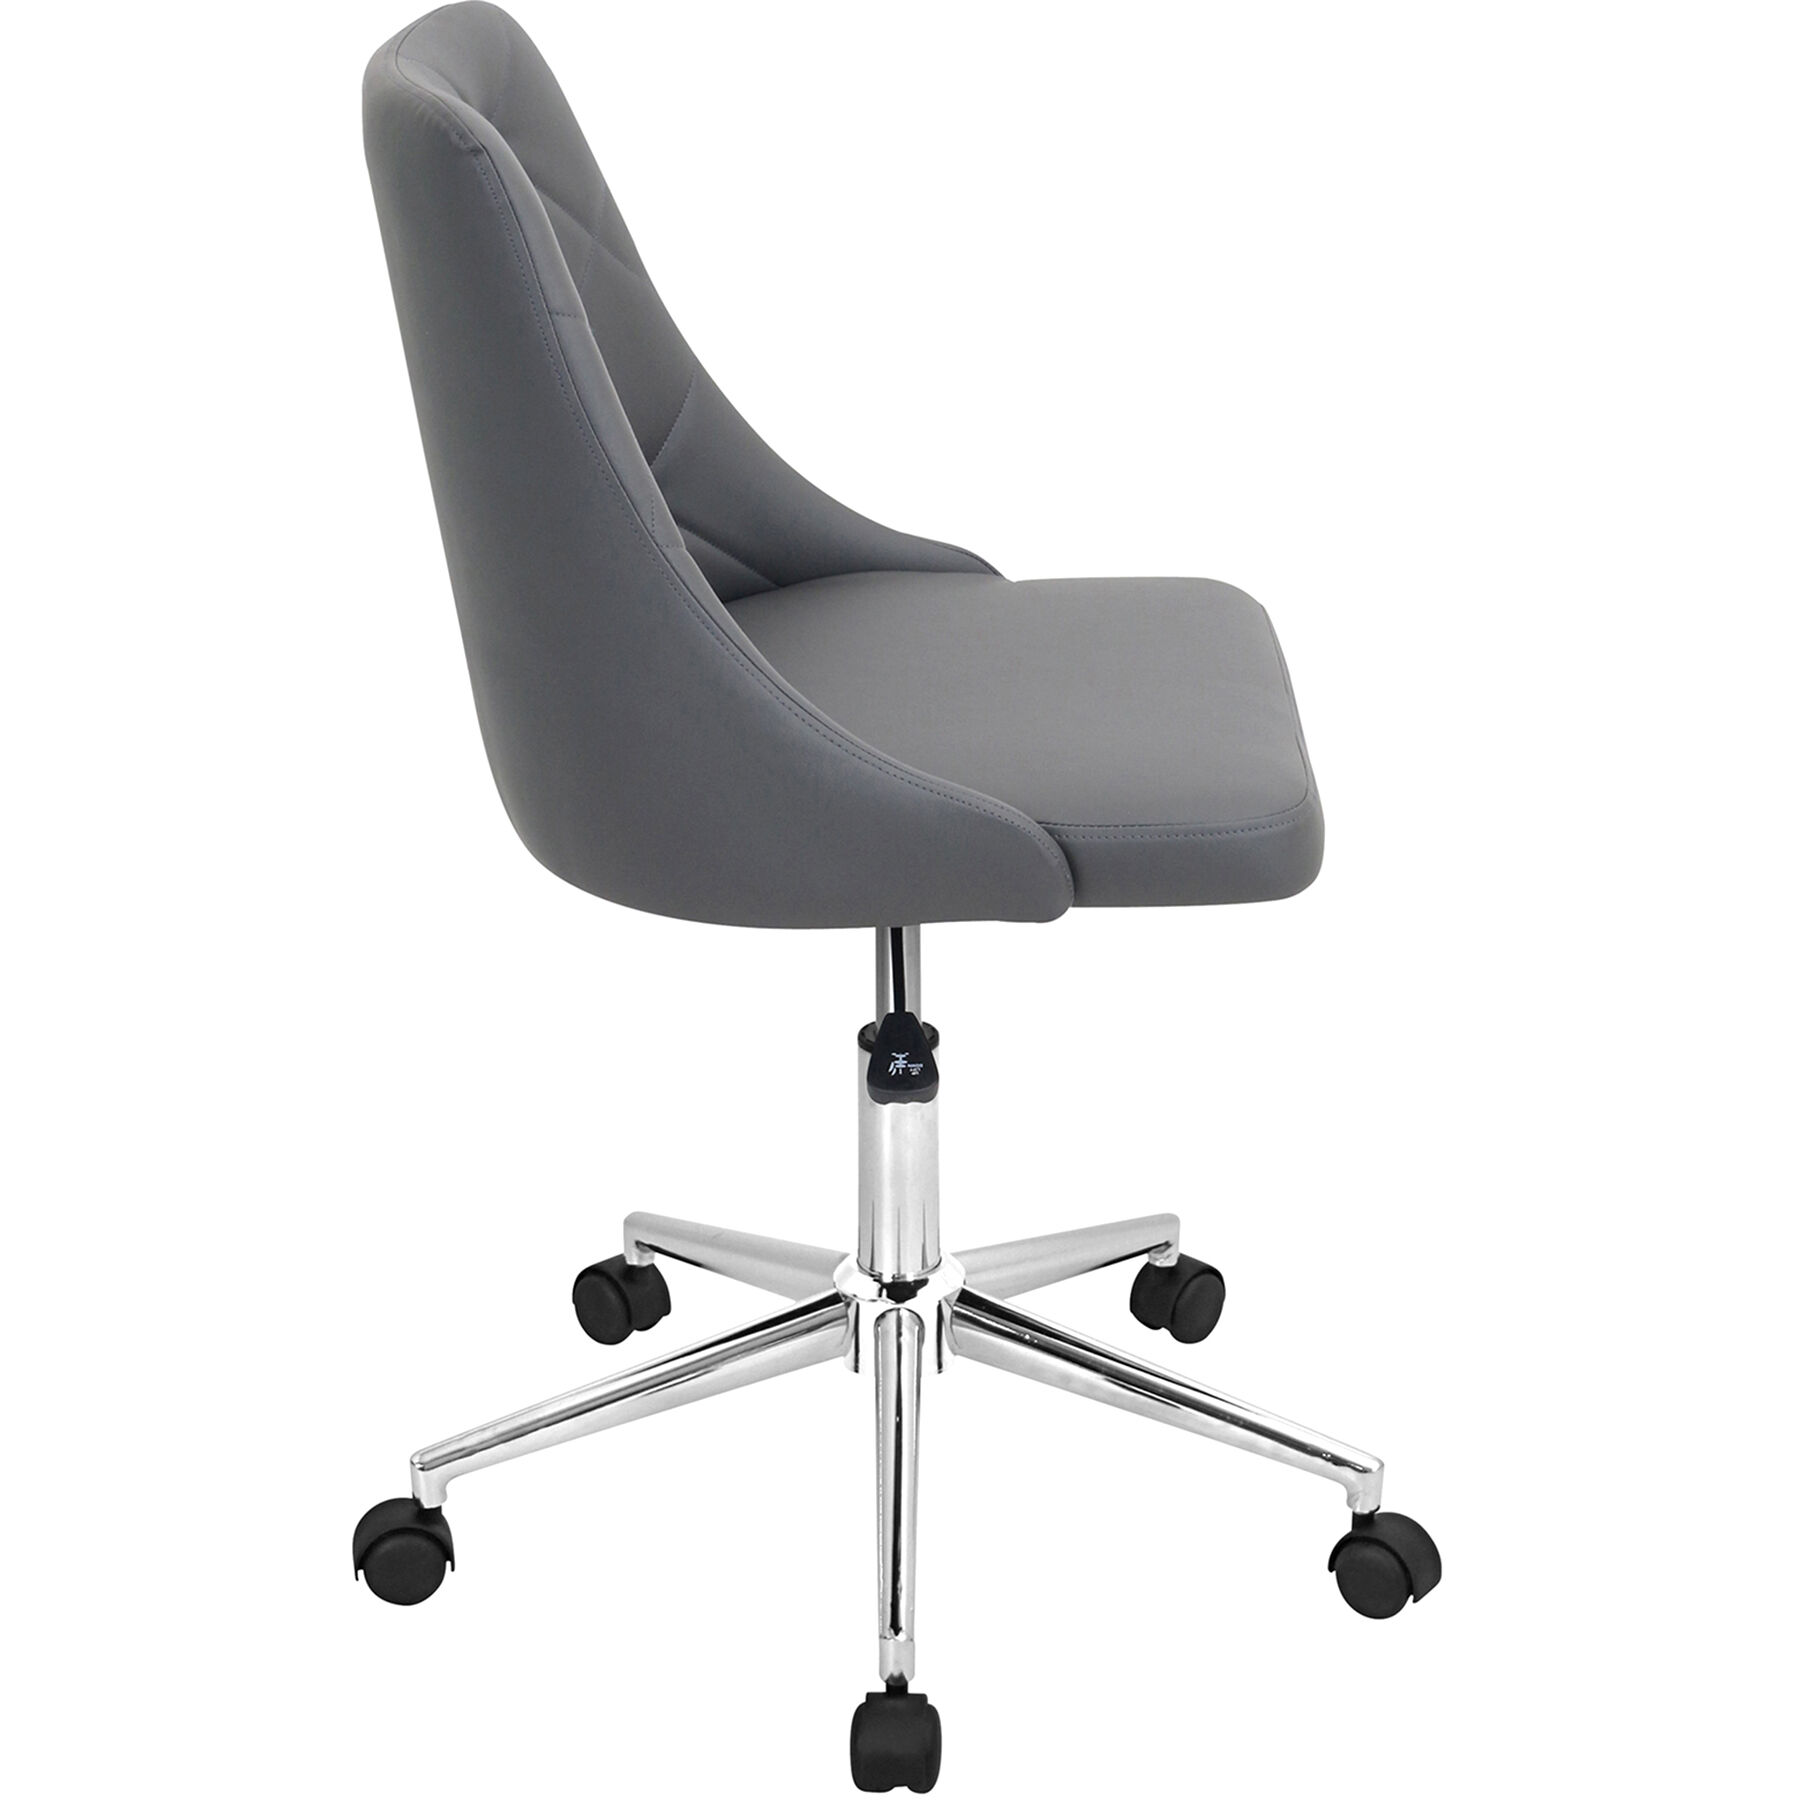 grey material office chair inexpensive ergonomic chairs marche at home